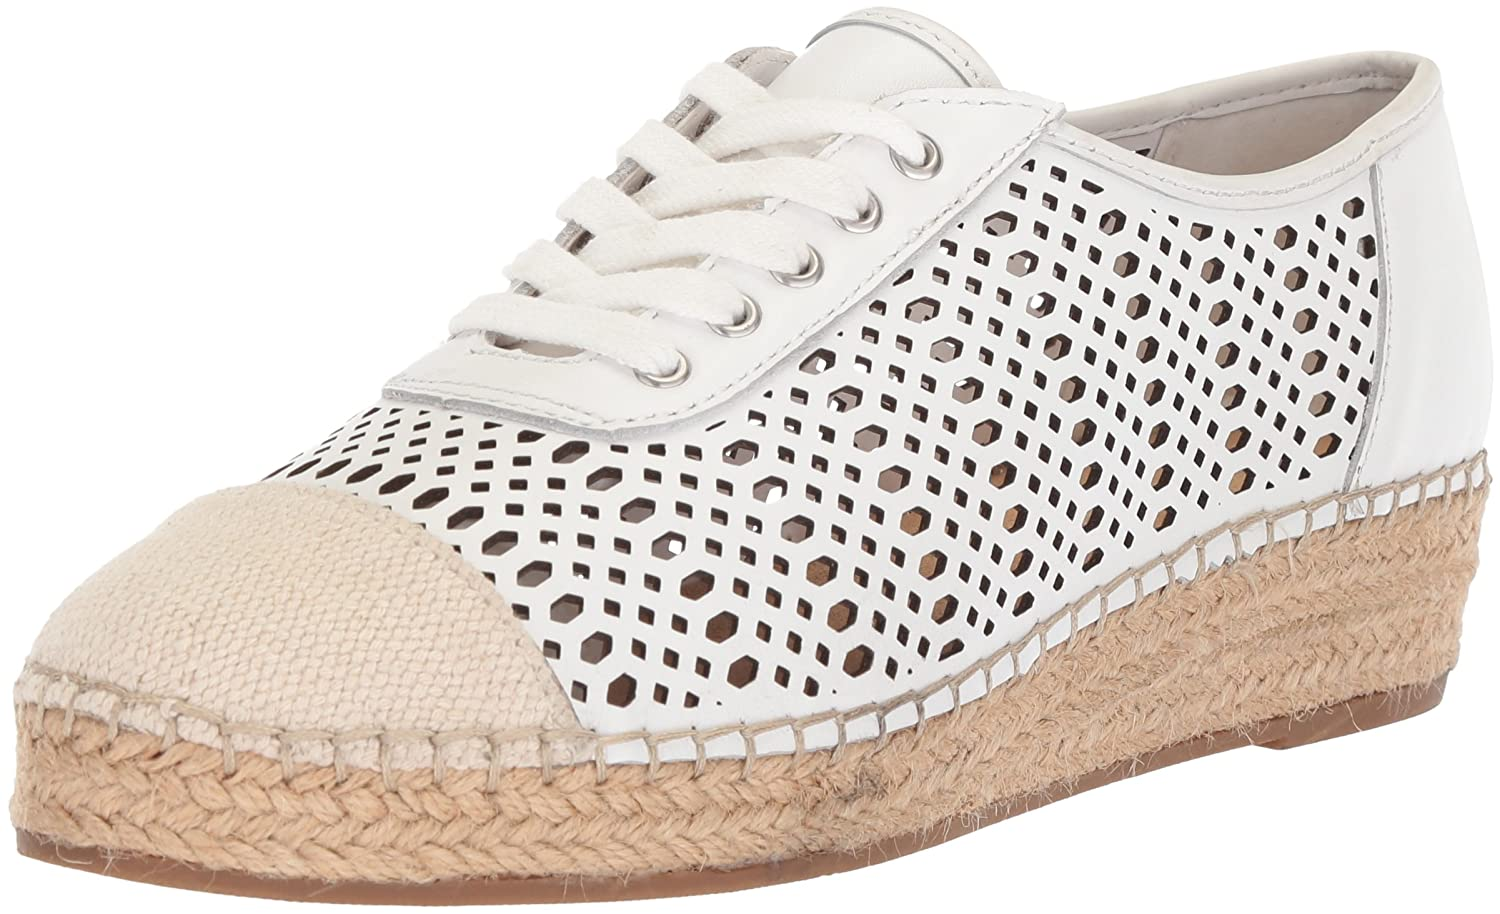 Bella Vita Women's Clementine Sneaker B07864V15L 7 W US|White Leather